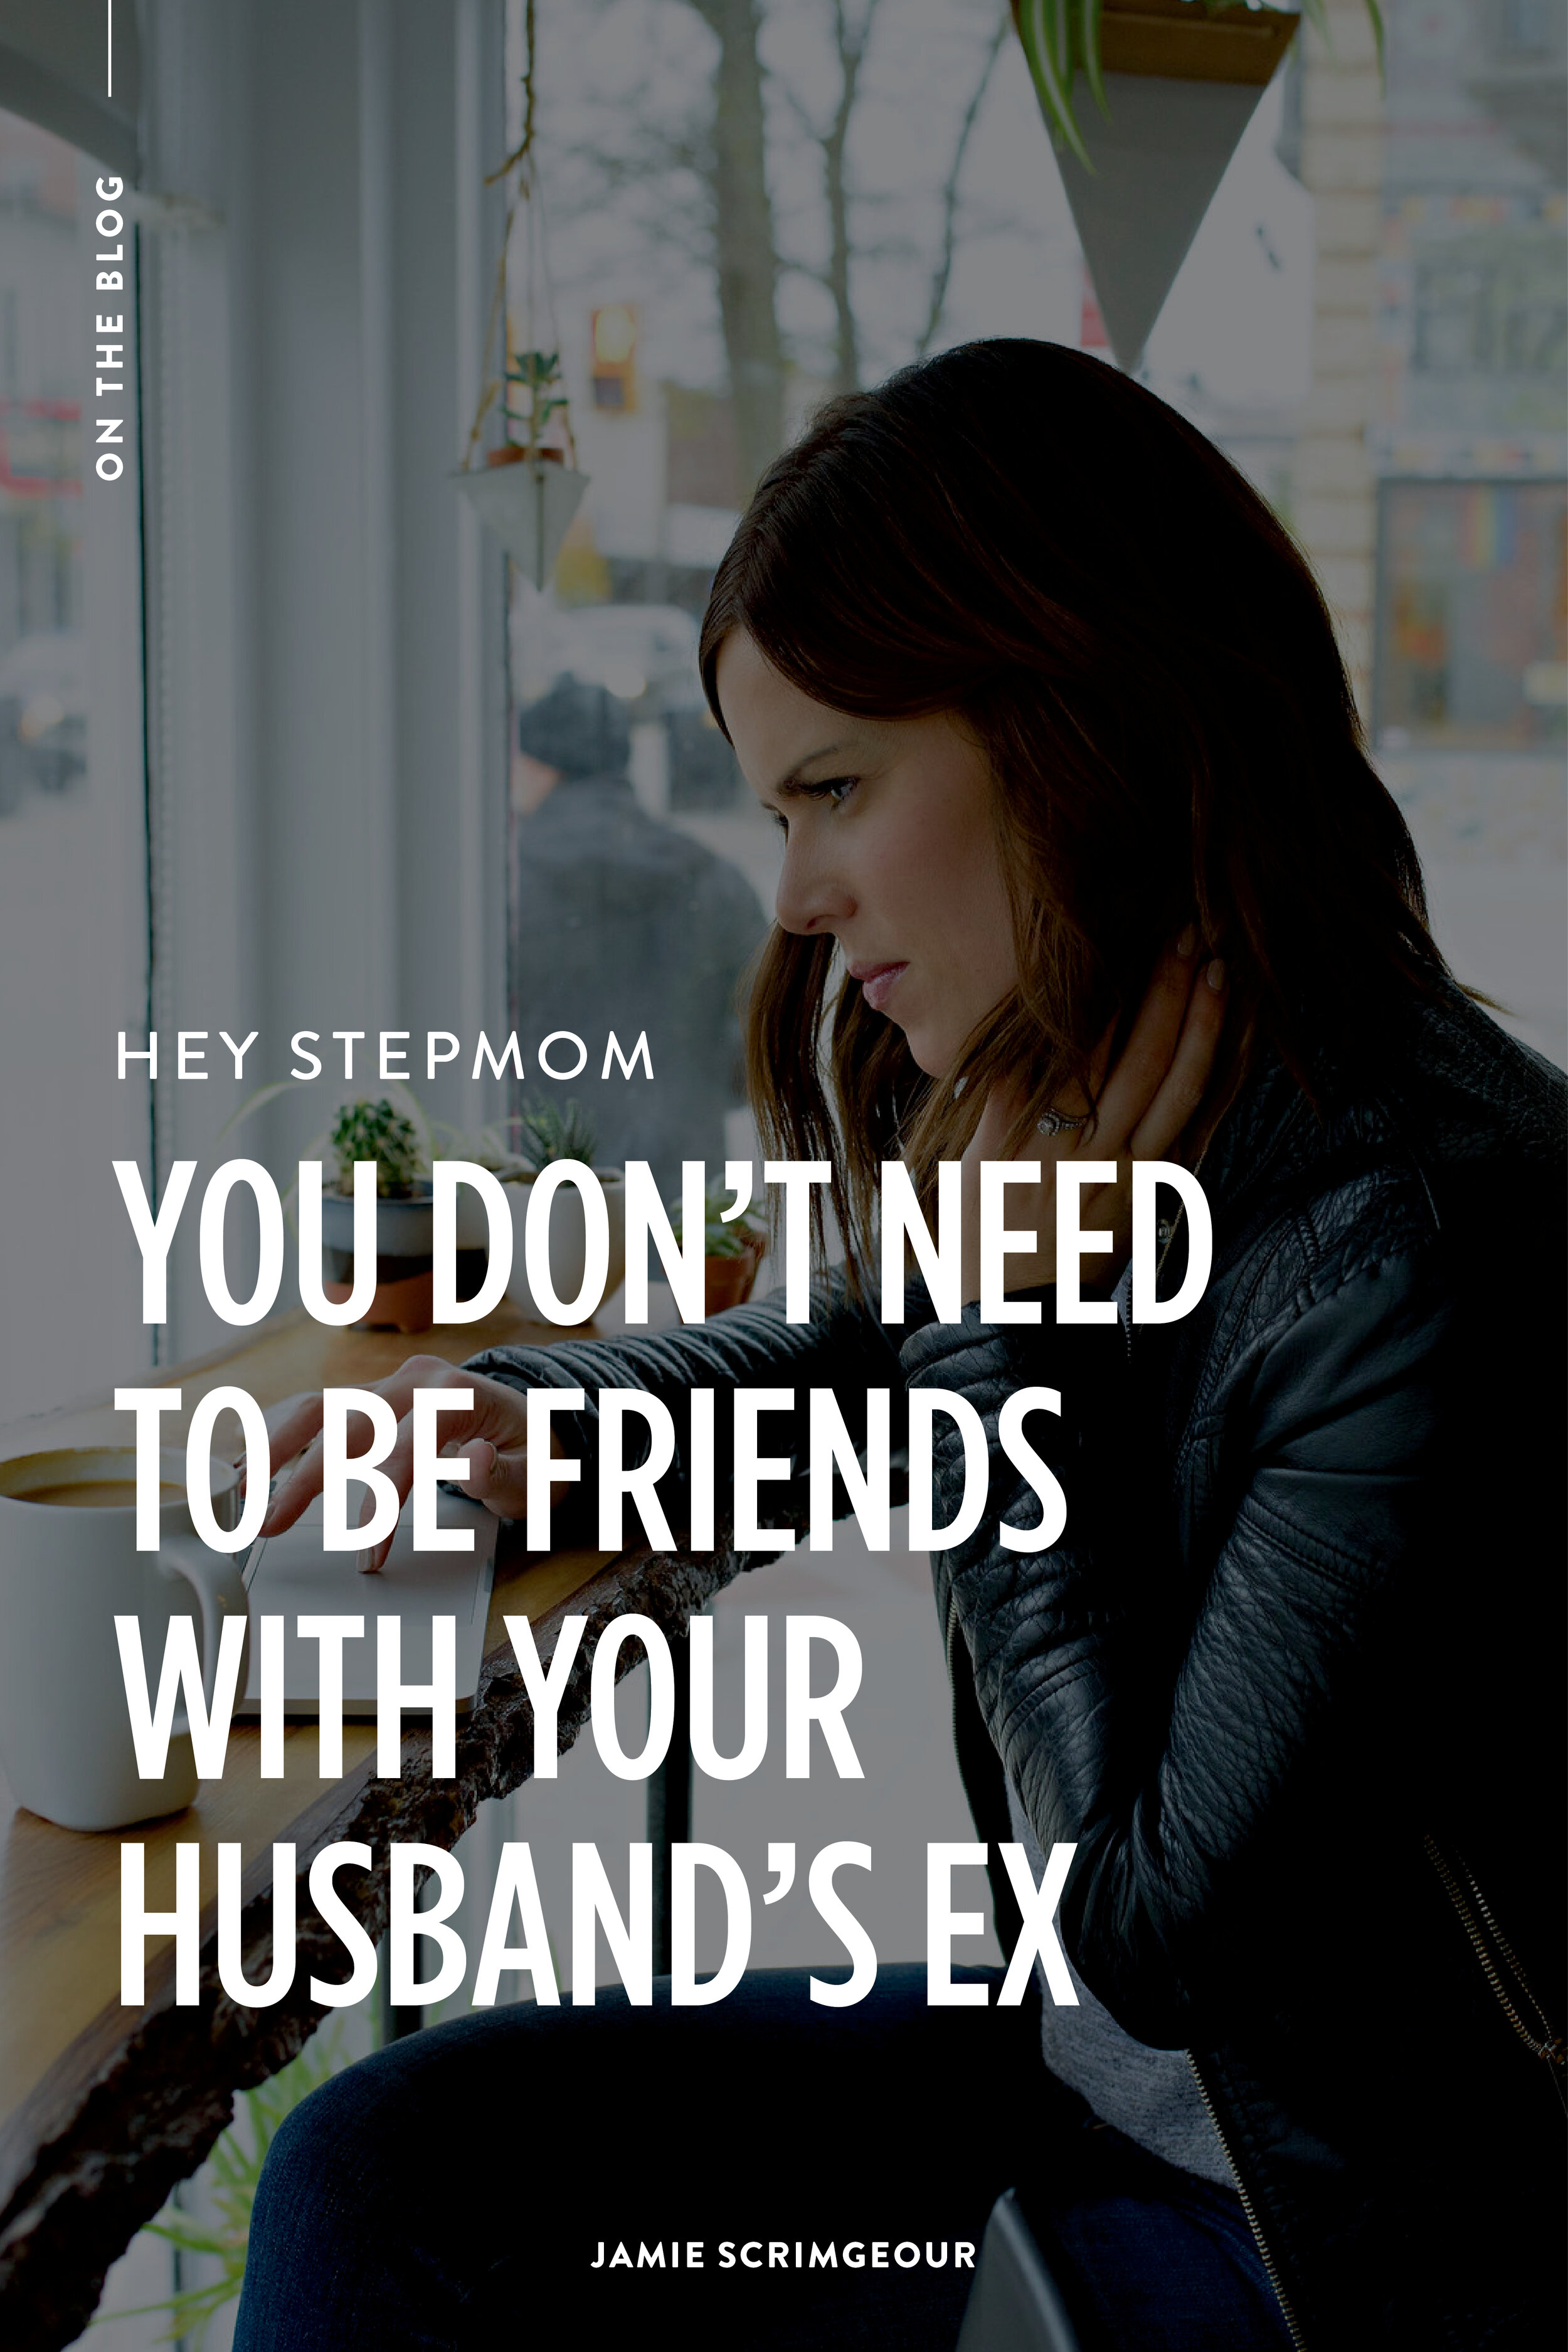 Jamie Scrimgeour - No Stepmom You Don't Need To Be Friends With The Ex   Stepmom Support